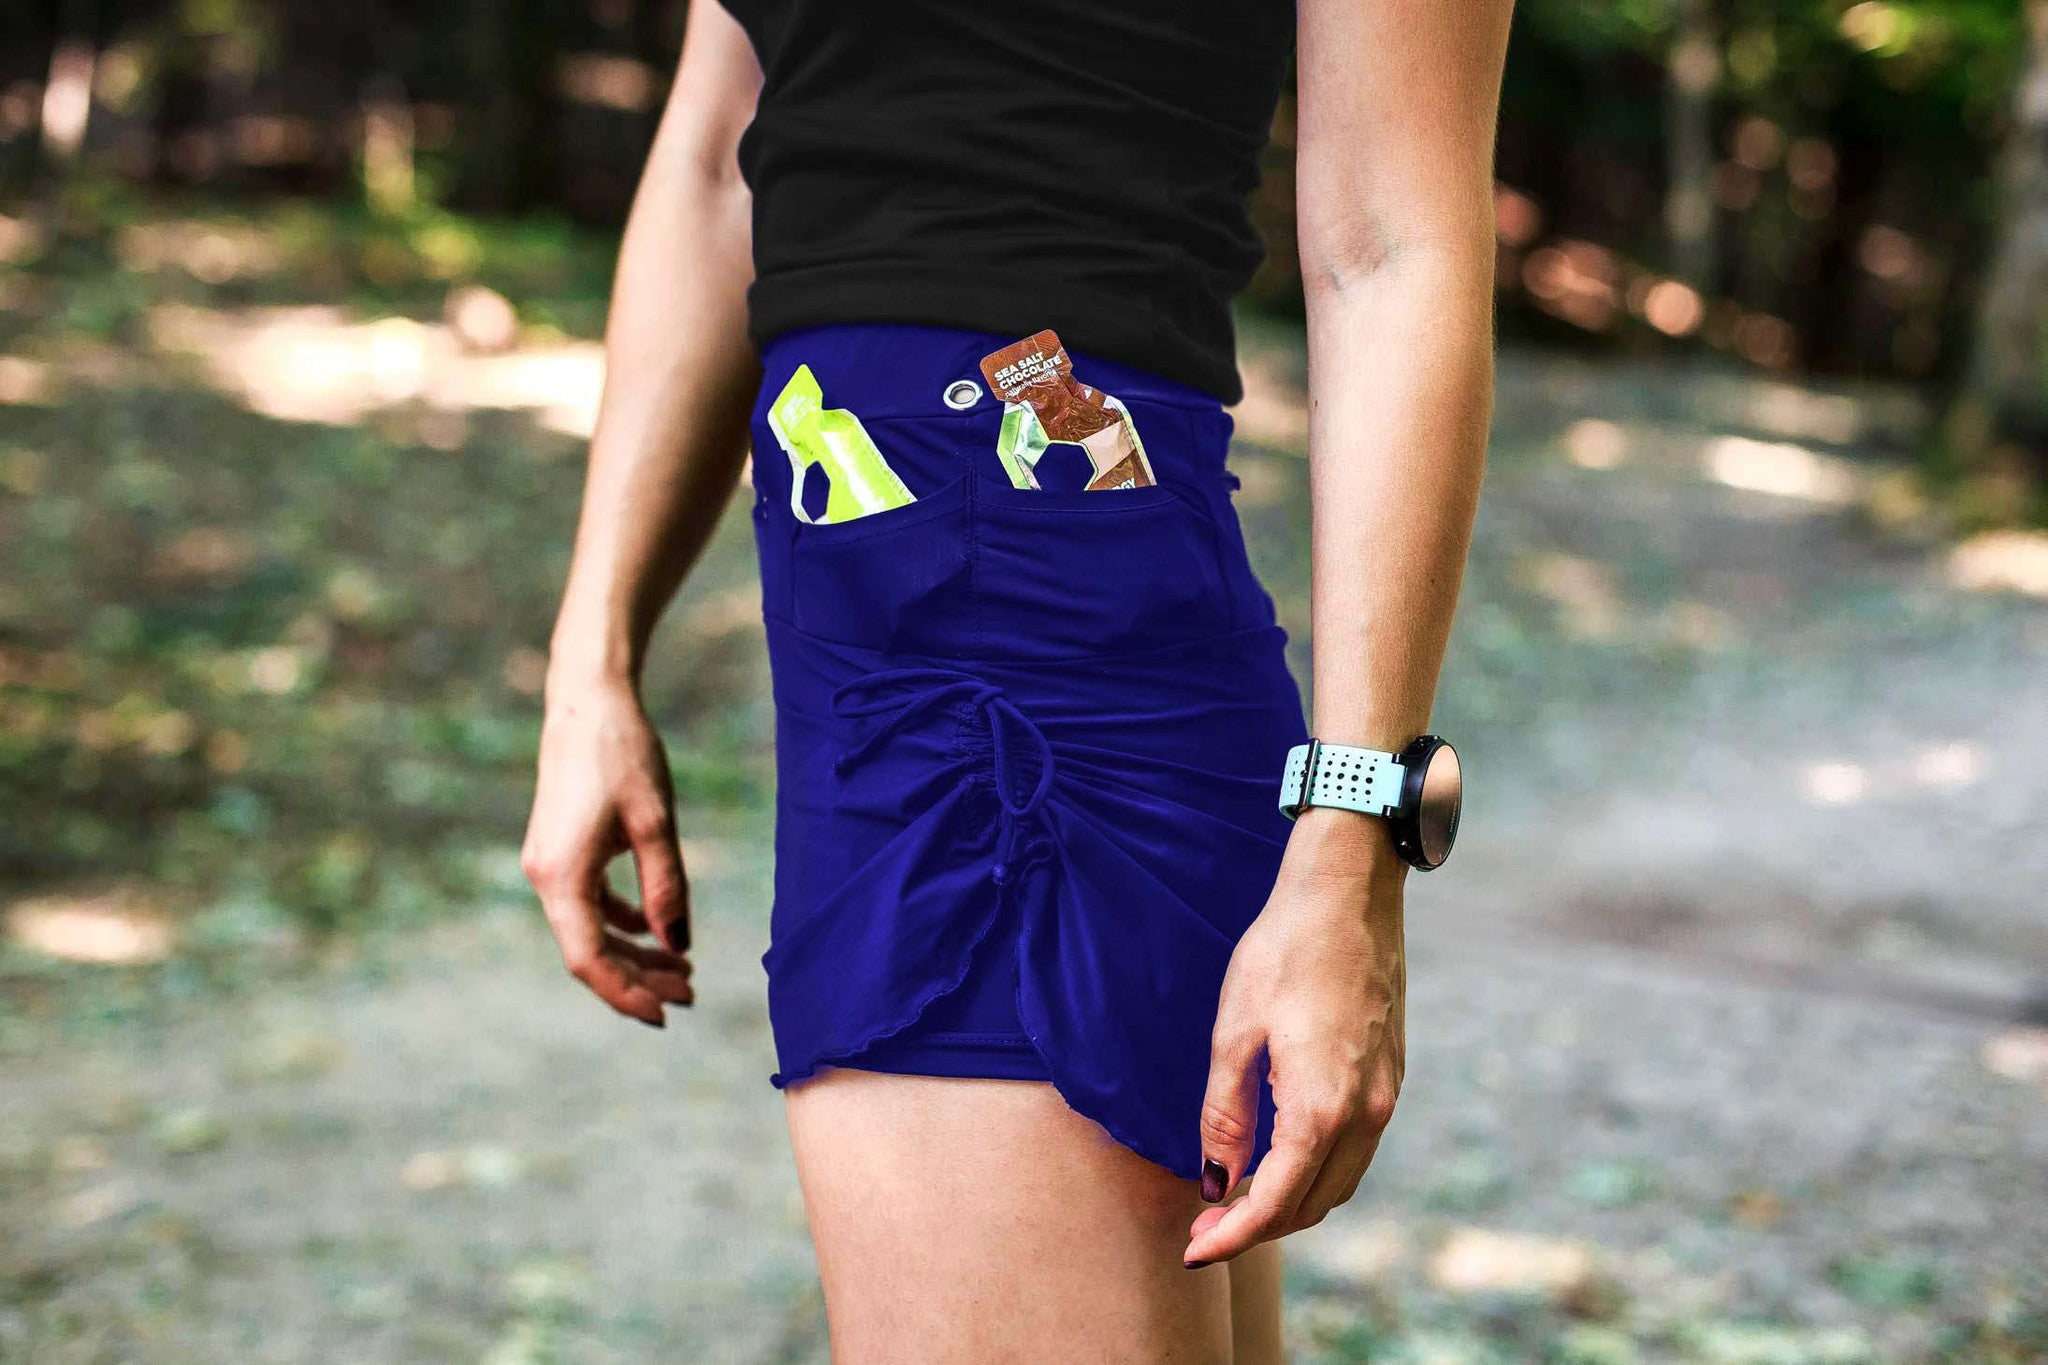 Enso running skirt, running skirt, sport skirt, trail running skirt, tennis skirt, ultra running skirt, endurance skirt, shorts+skirt, skirt for running, skirt for run, skirt and shorts for run, running skort, sport skort, running skirt with pockets, running skirt with compression shorts, running skirt with shorts, running skirt london, running skirt for women, london running skirt, uk running skirt, running skirt uk, run skirt, skirt for run, skirt for run uk london, skirt for run london, running skirt usa, running skirt with shorts usa